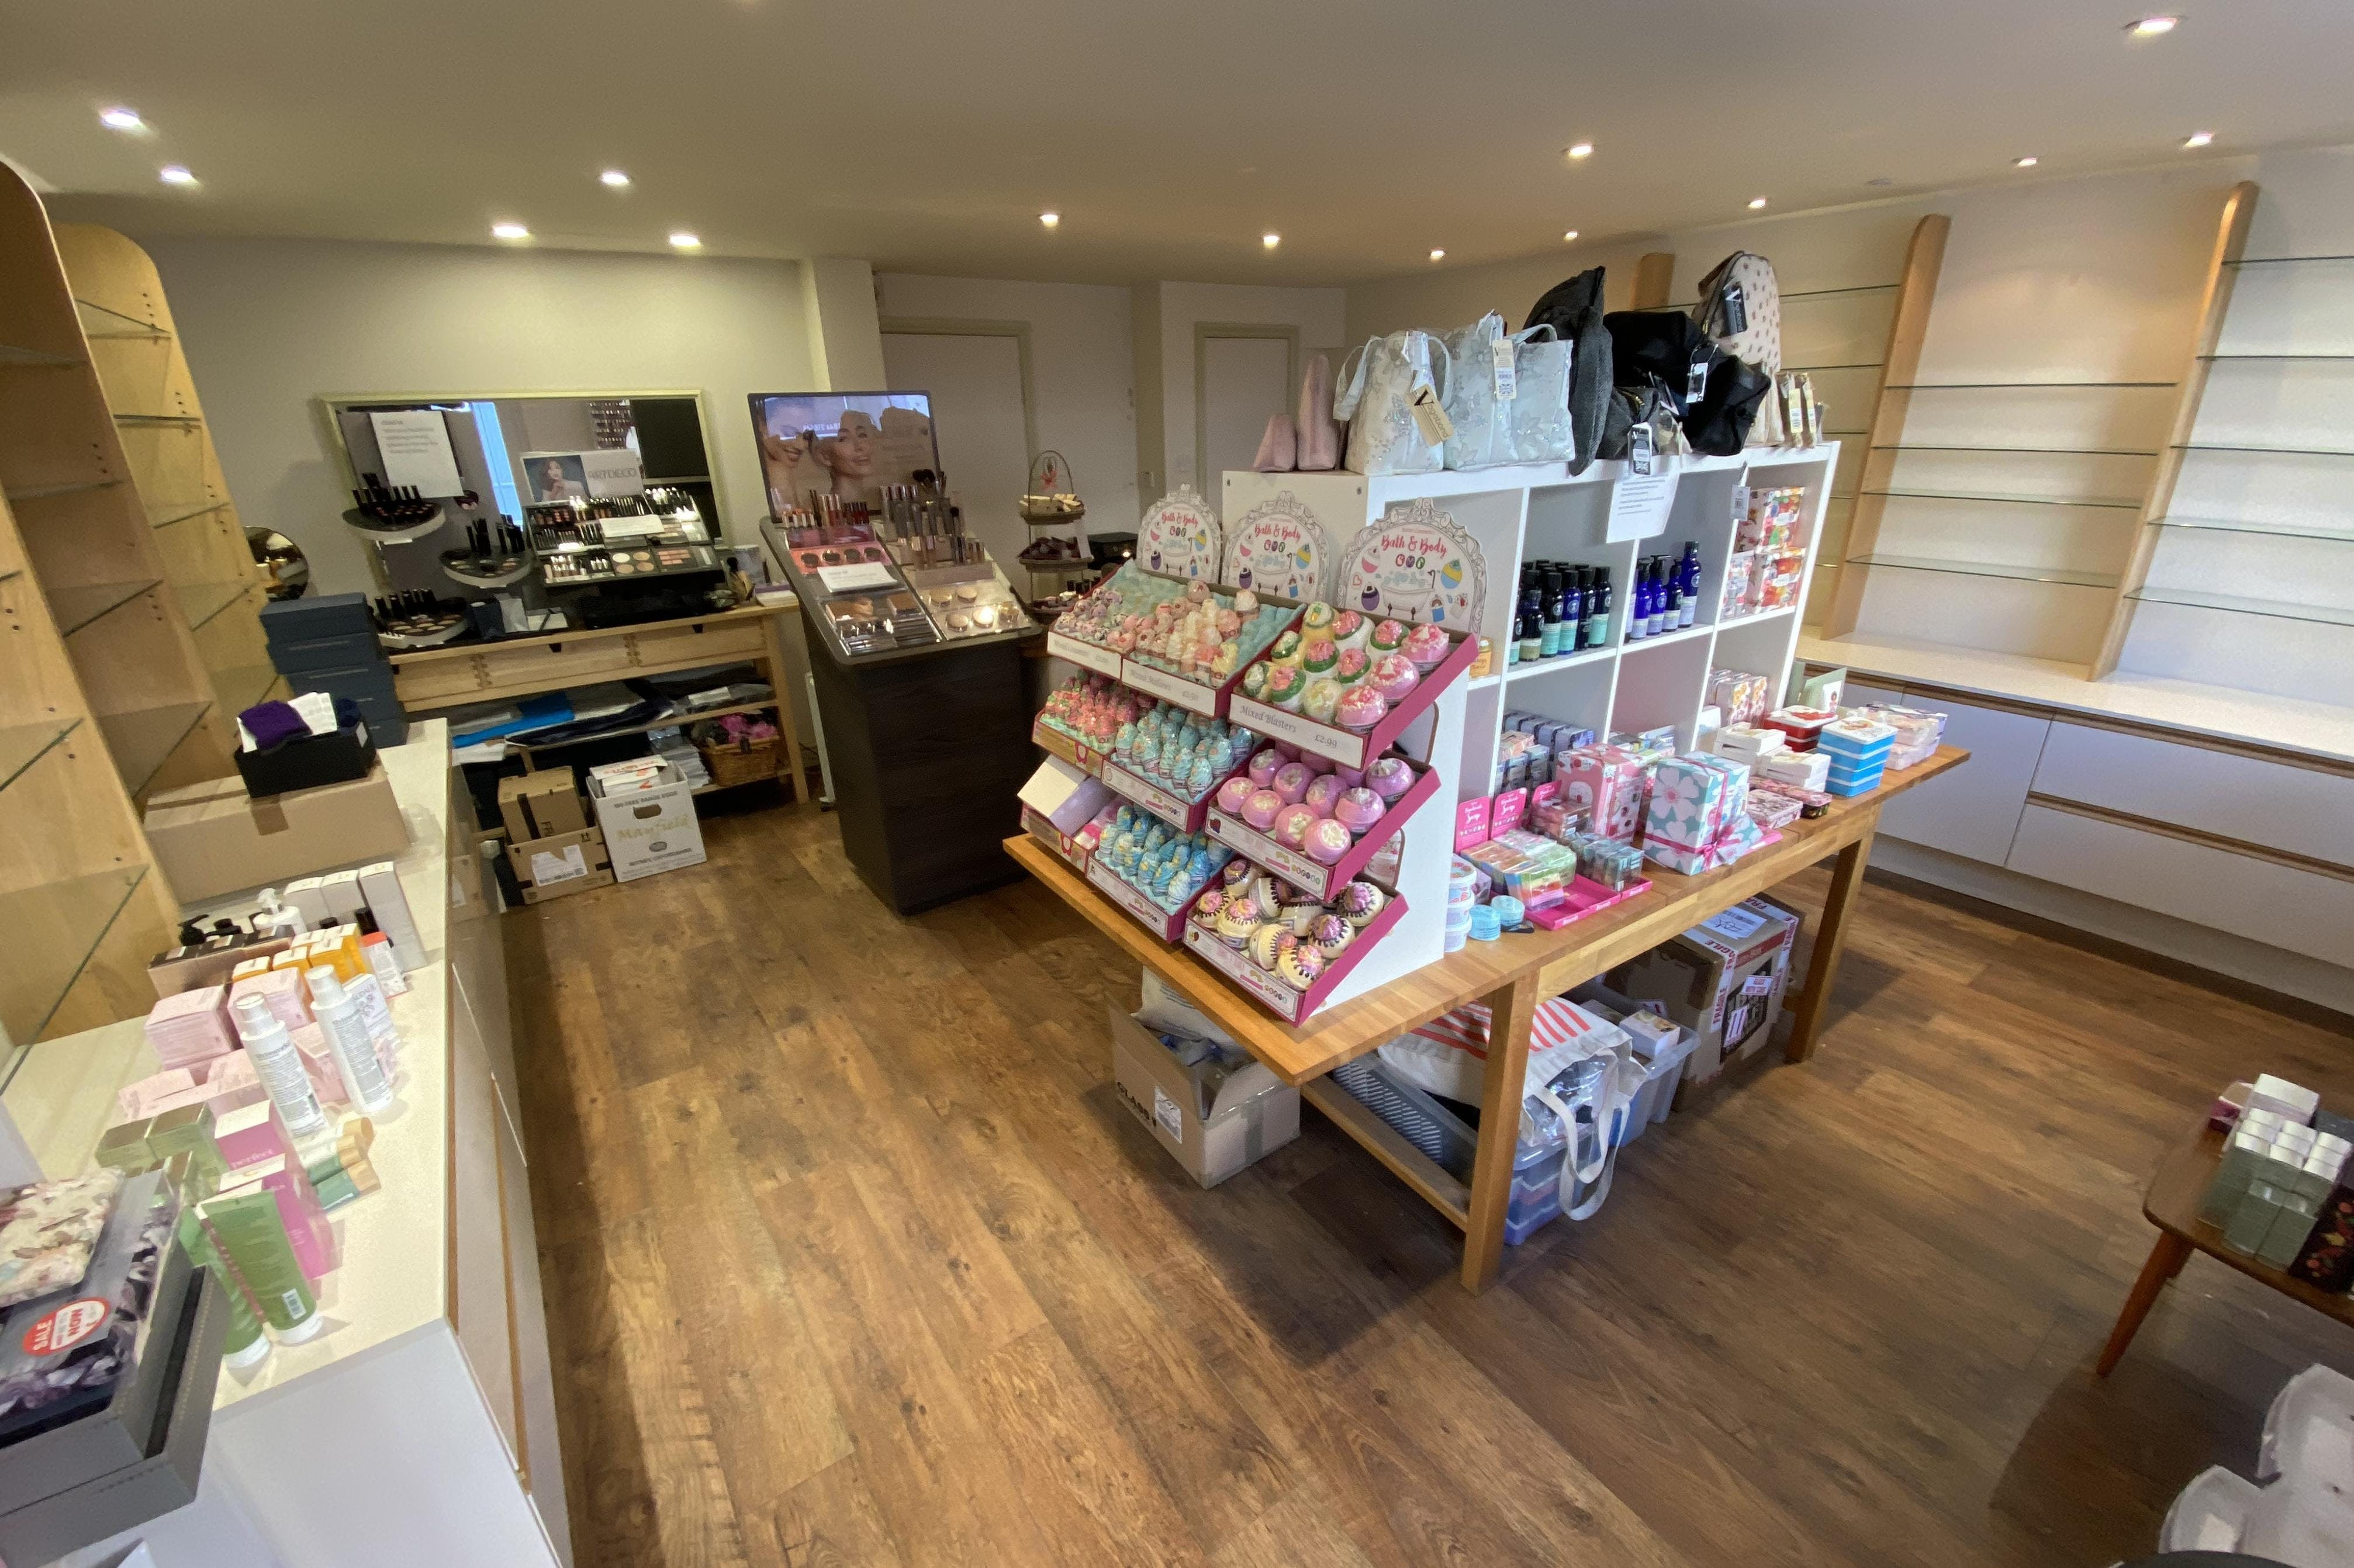 17A Buttermarket, Thame, Retail To Let - INT 1.JPG